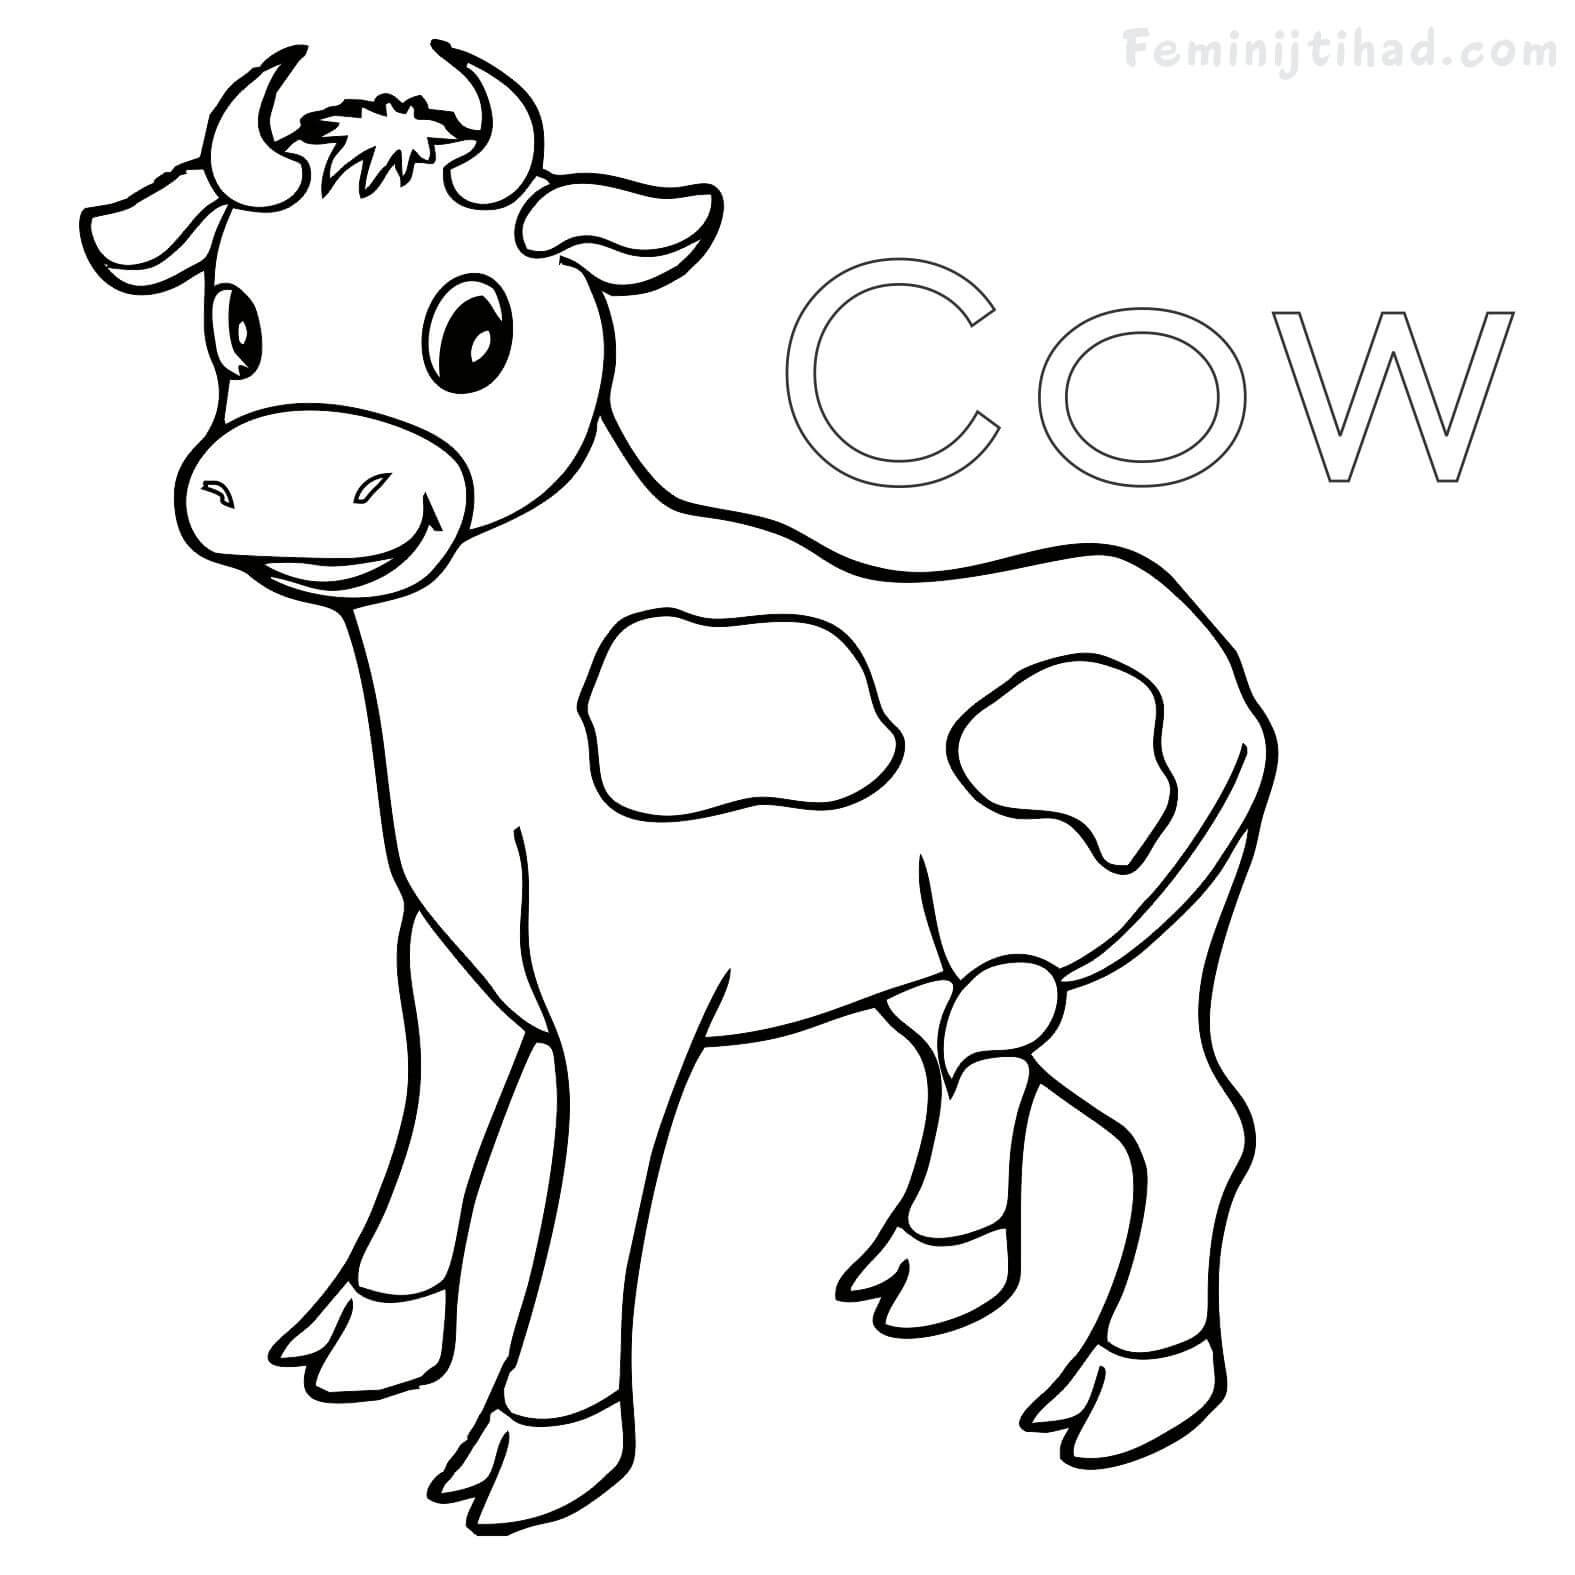 1575x1575 Cow Coloring Pages Free To Print For Kids Noticeable Pictures Tixac